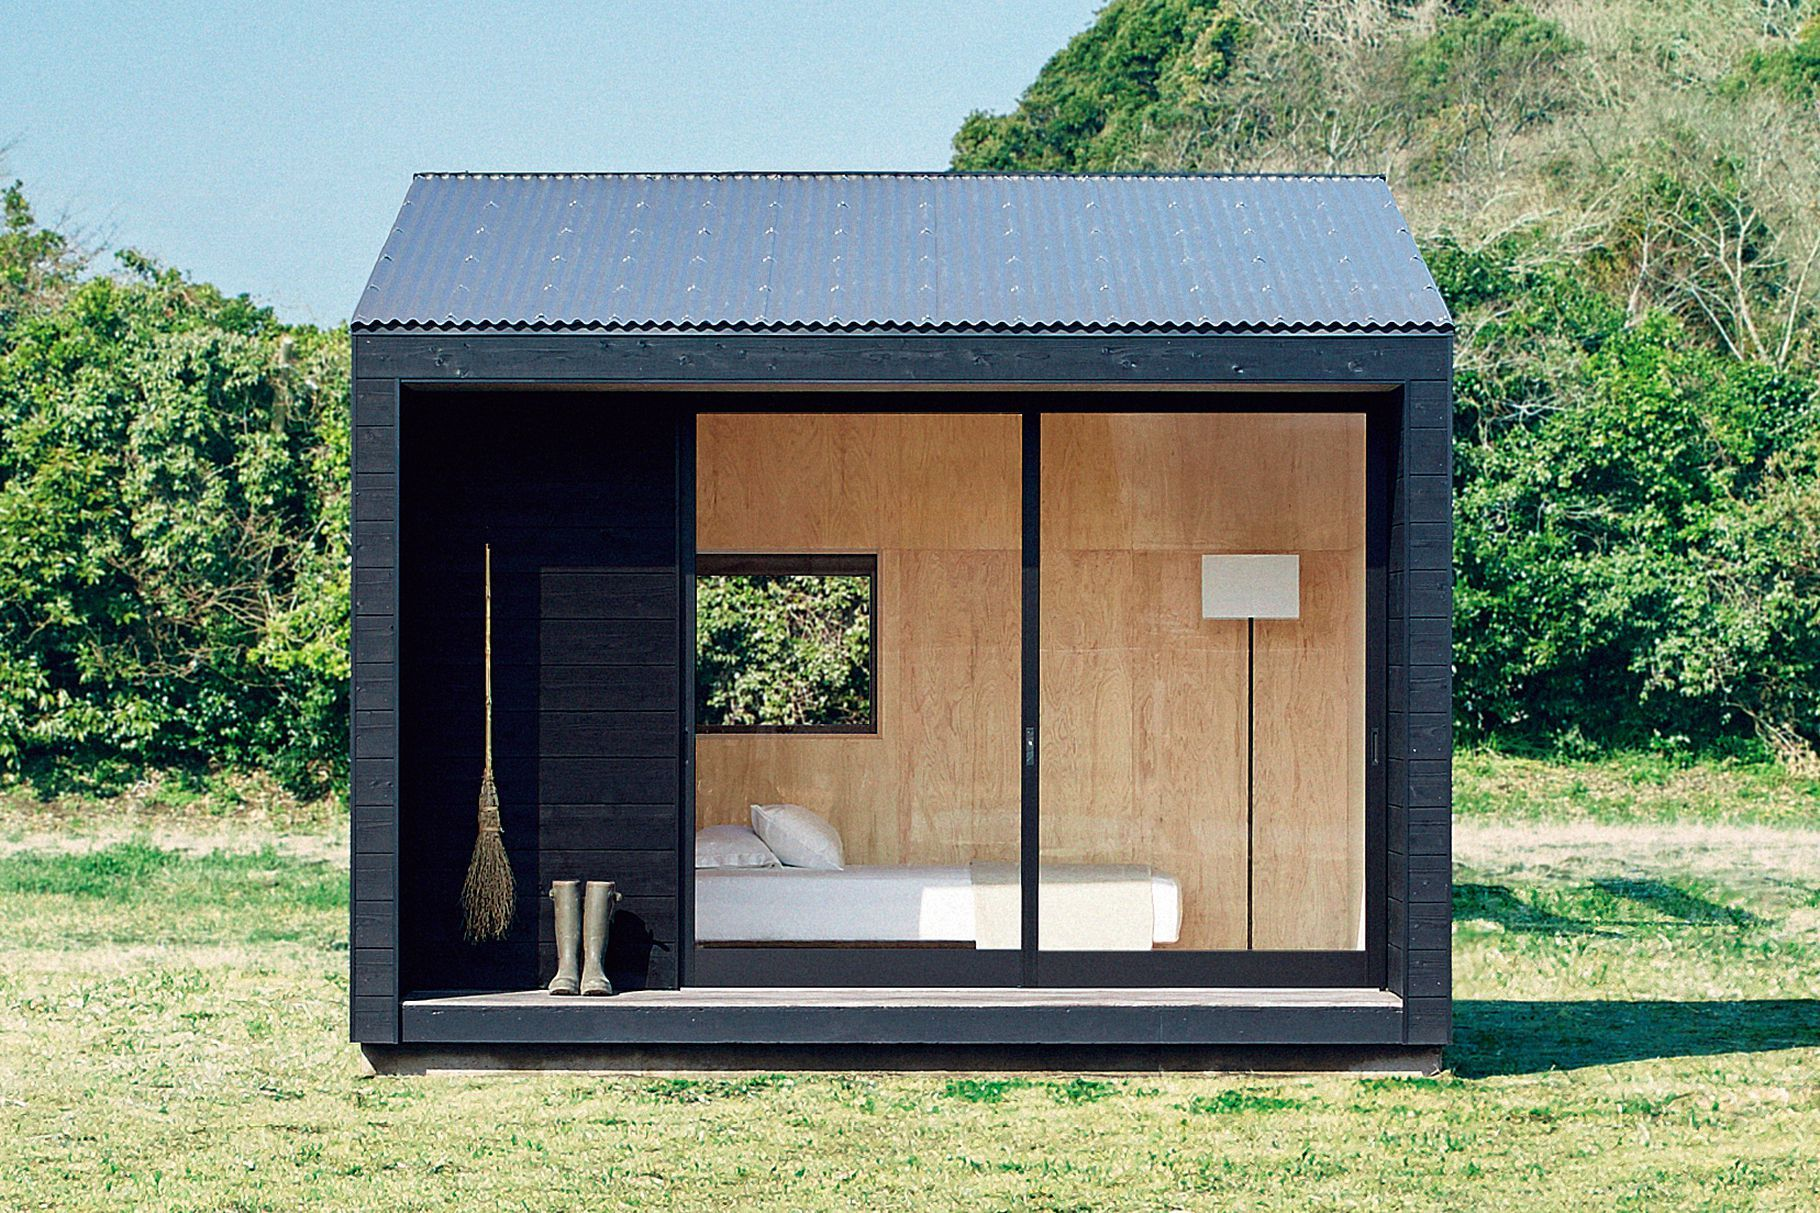 Muji Hut Tiny House Is Now On Sale In Japan For 26k Curbed In 2020 Muji Hut Tiny House Design Prefab Cabins